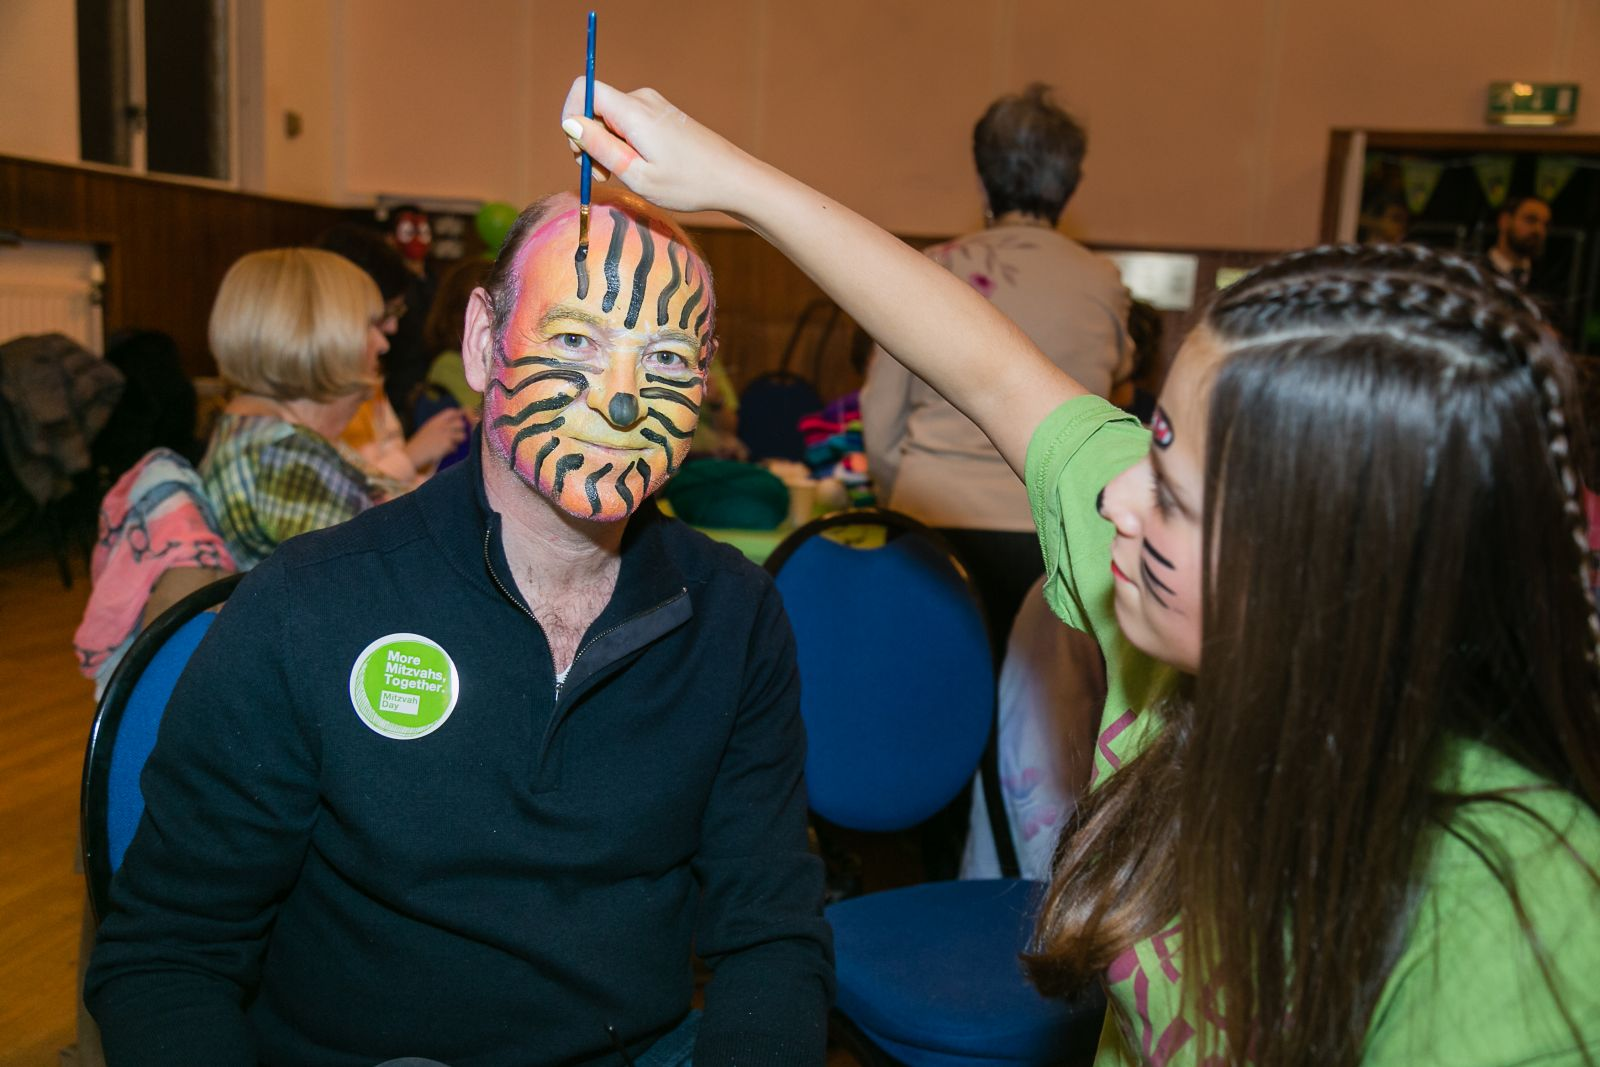 Face painting at Stanmore and Canons Park Synagogue - picture by Yakir Zur